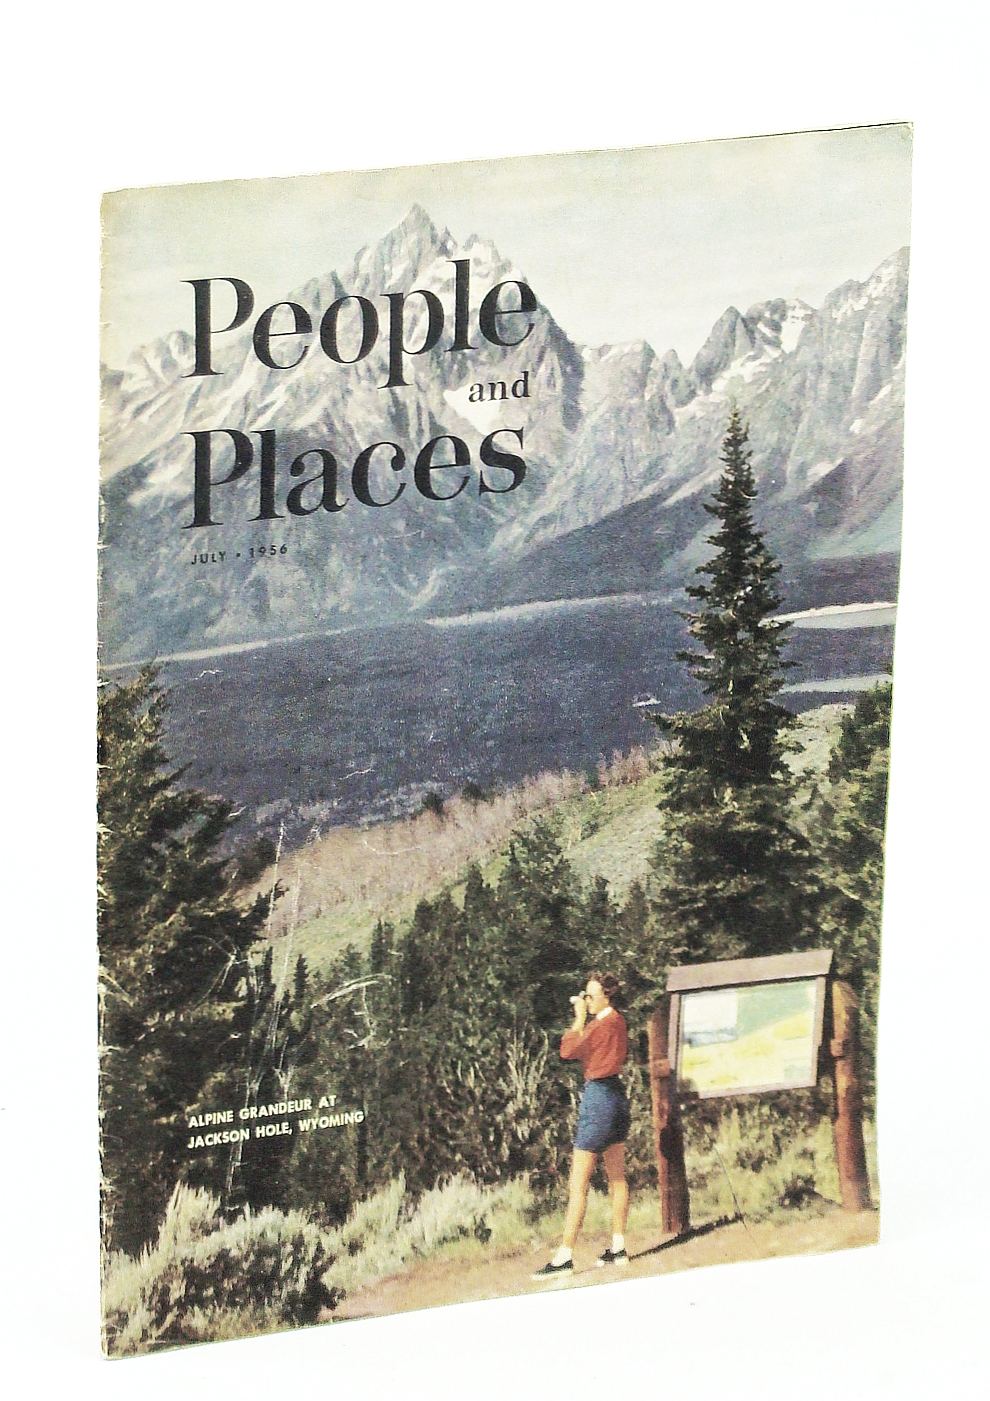 Image for People and Places Magazine, July, 1956, Volume 13, Number 5 - Jackson Hole Cover Photo